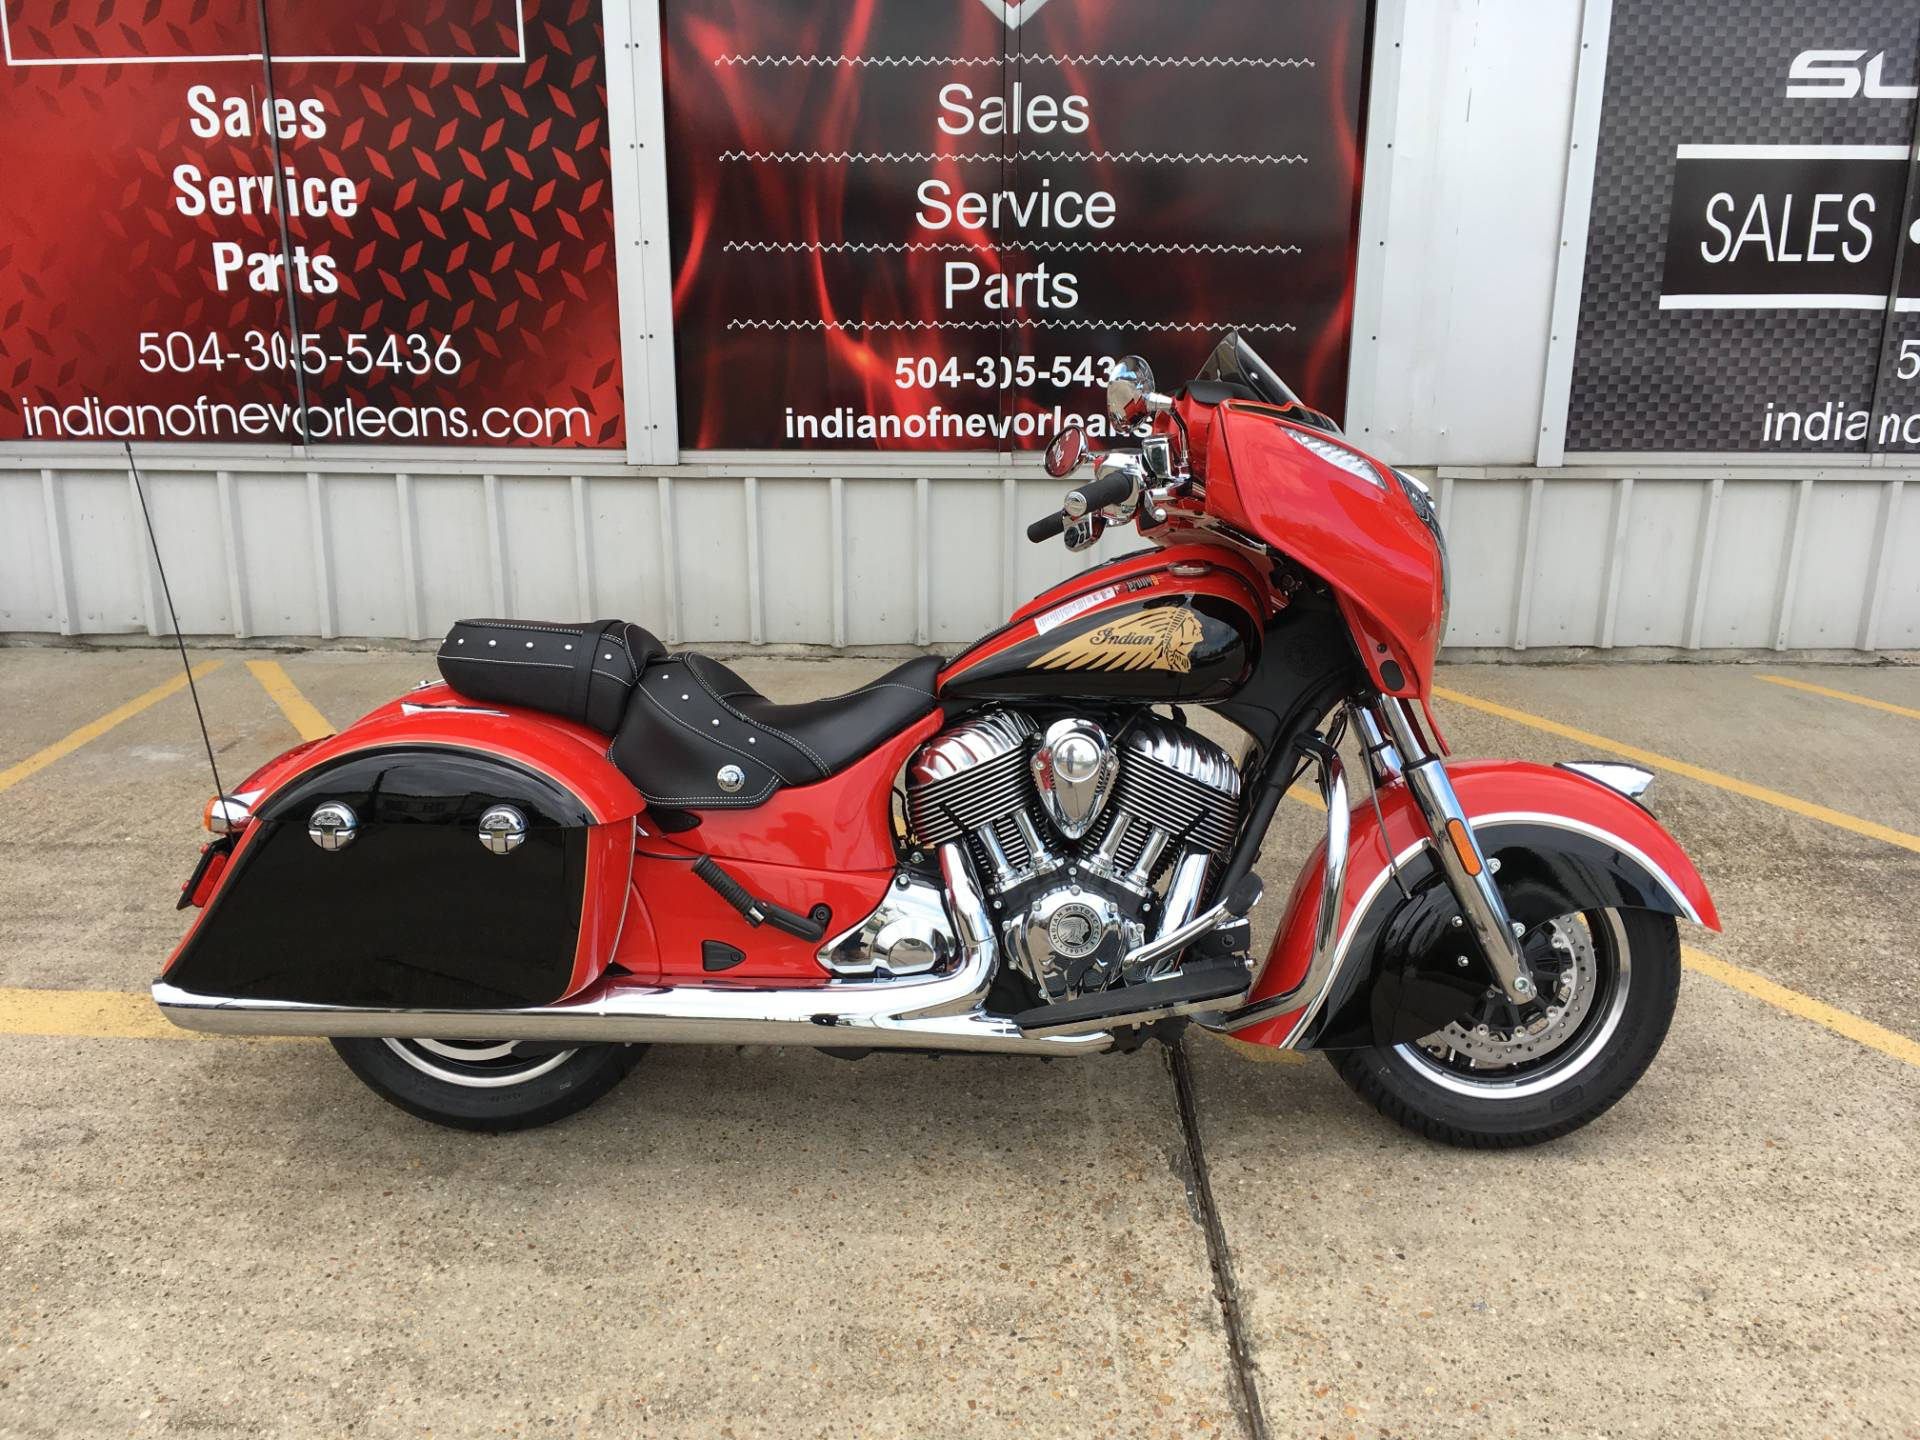 2017 Indian ChieftainR In Saint Rose Louisiana